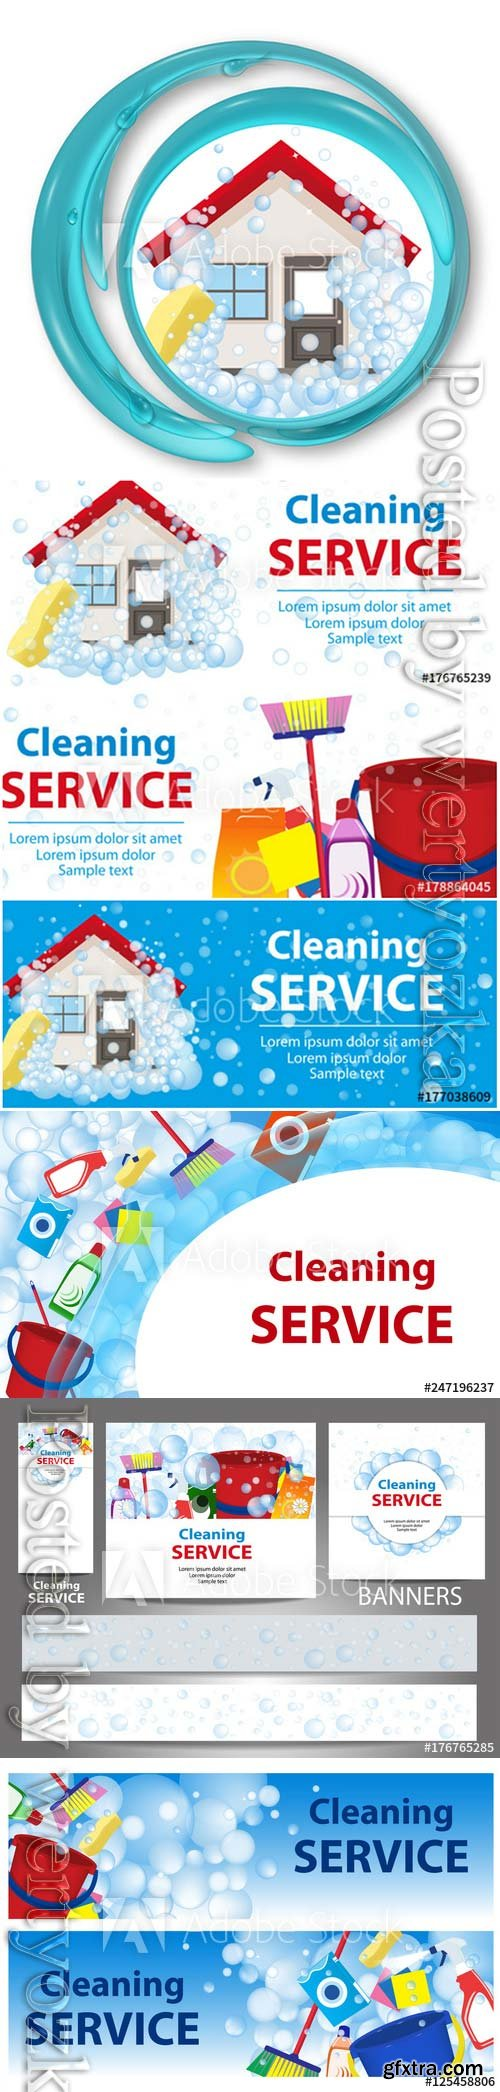 Poster template for house cleaning services vector design